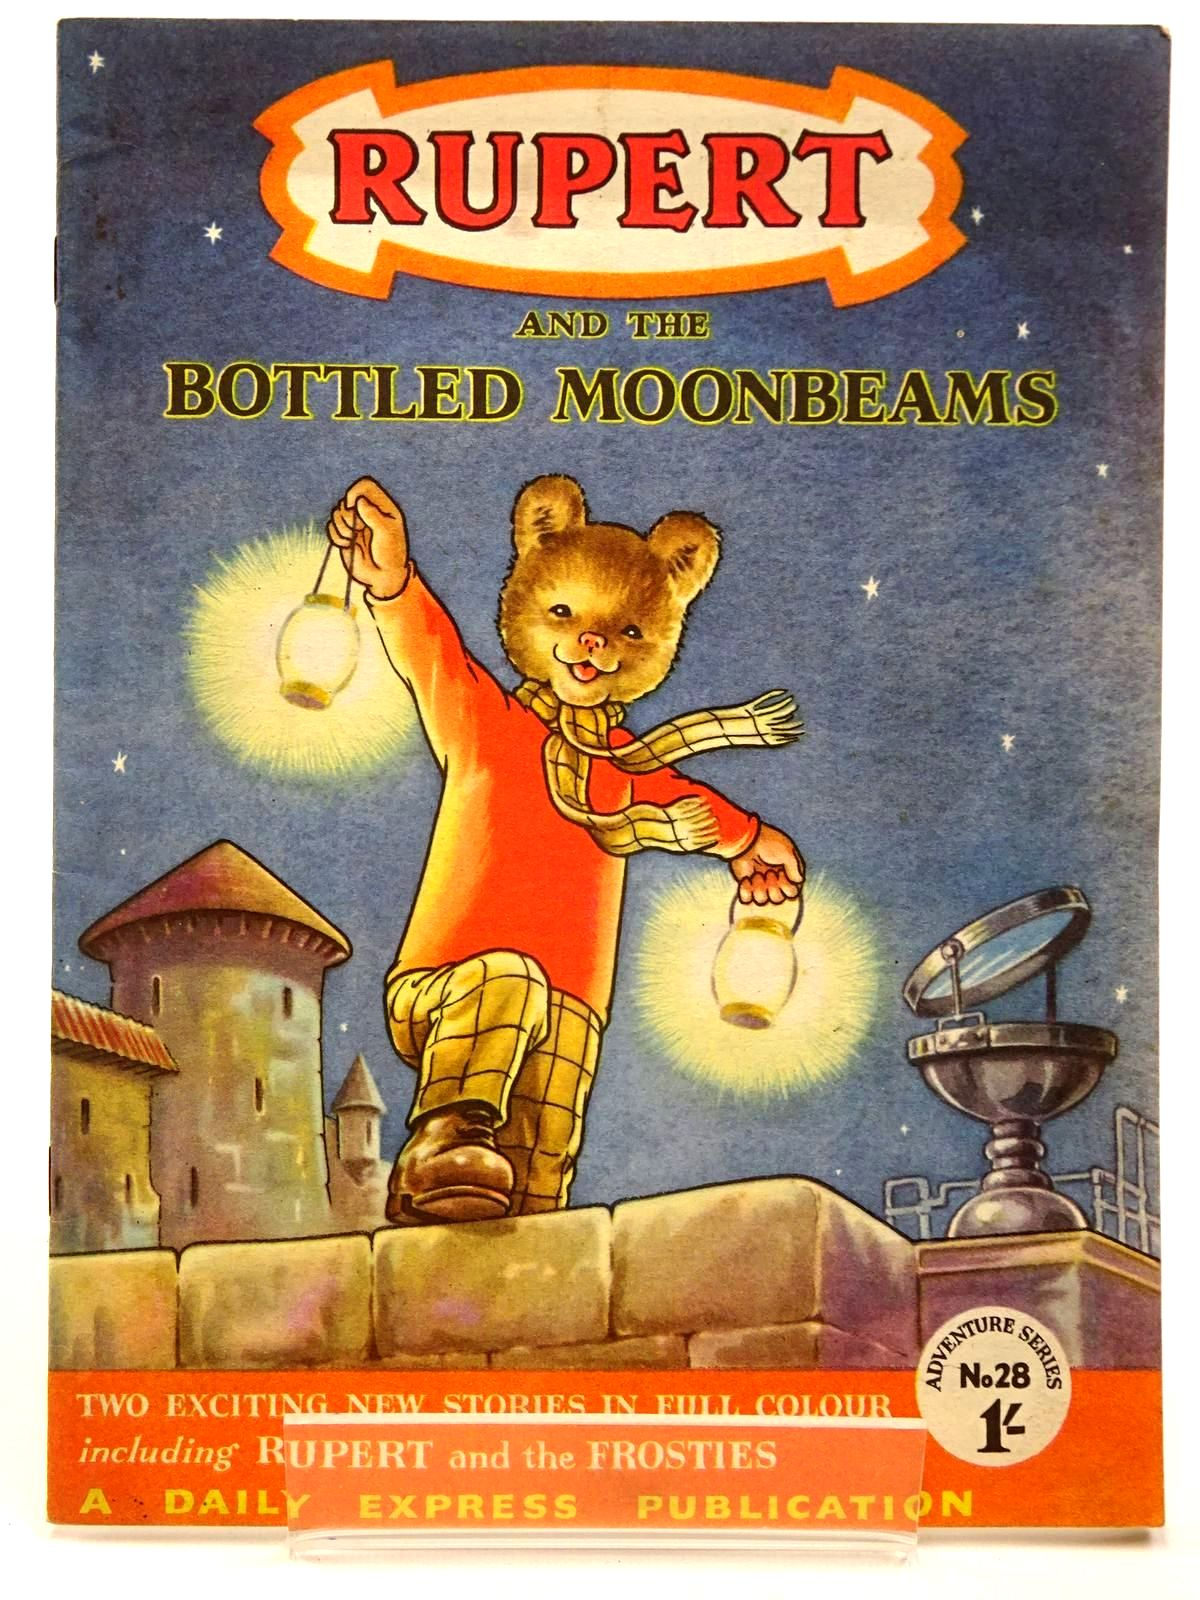 Photo of RUPERT ADVENTURE SERIES No. 28 - RUPERT AND THE BOTTLED MOONBEAMS written by Bestall, Alfred published by Daily Express (STOCK CODE: 2130228)  for sale by Stella & Rose's Books